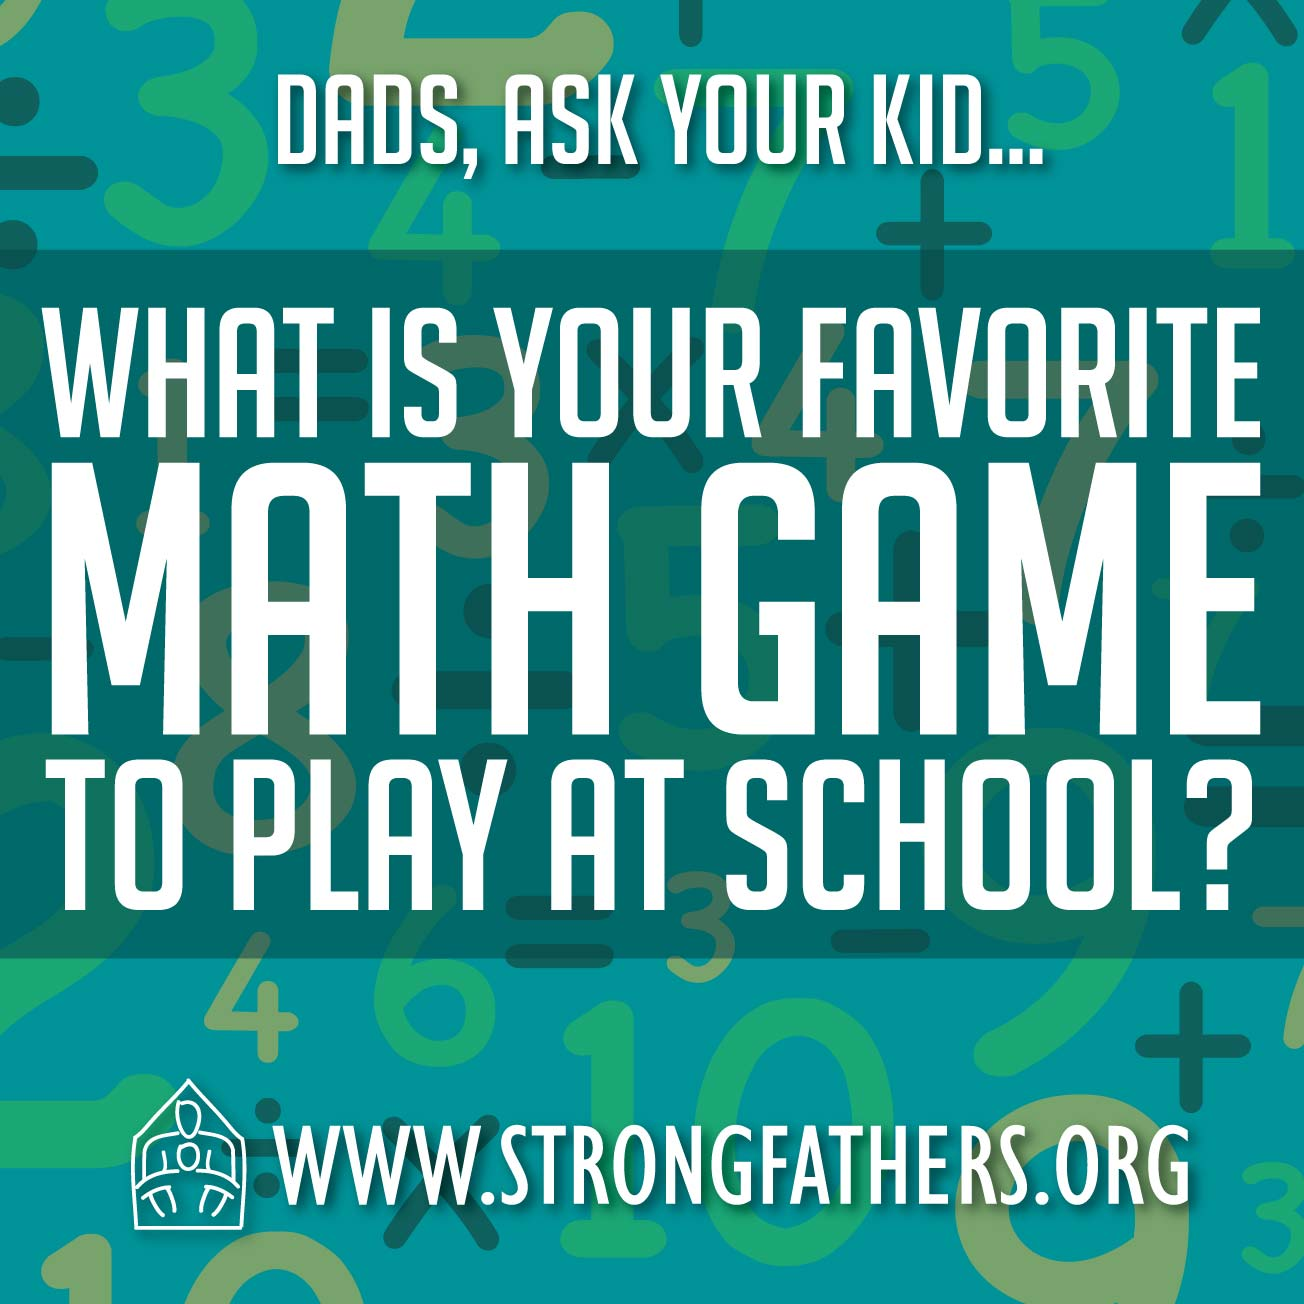 Dads ask your kids what is your favorite math game to play at school?